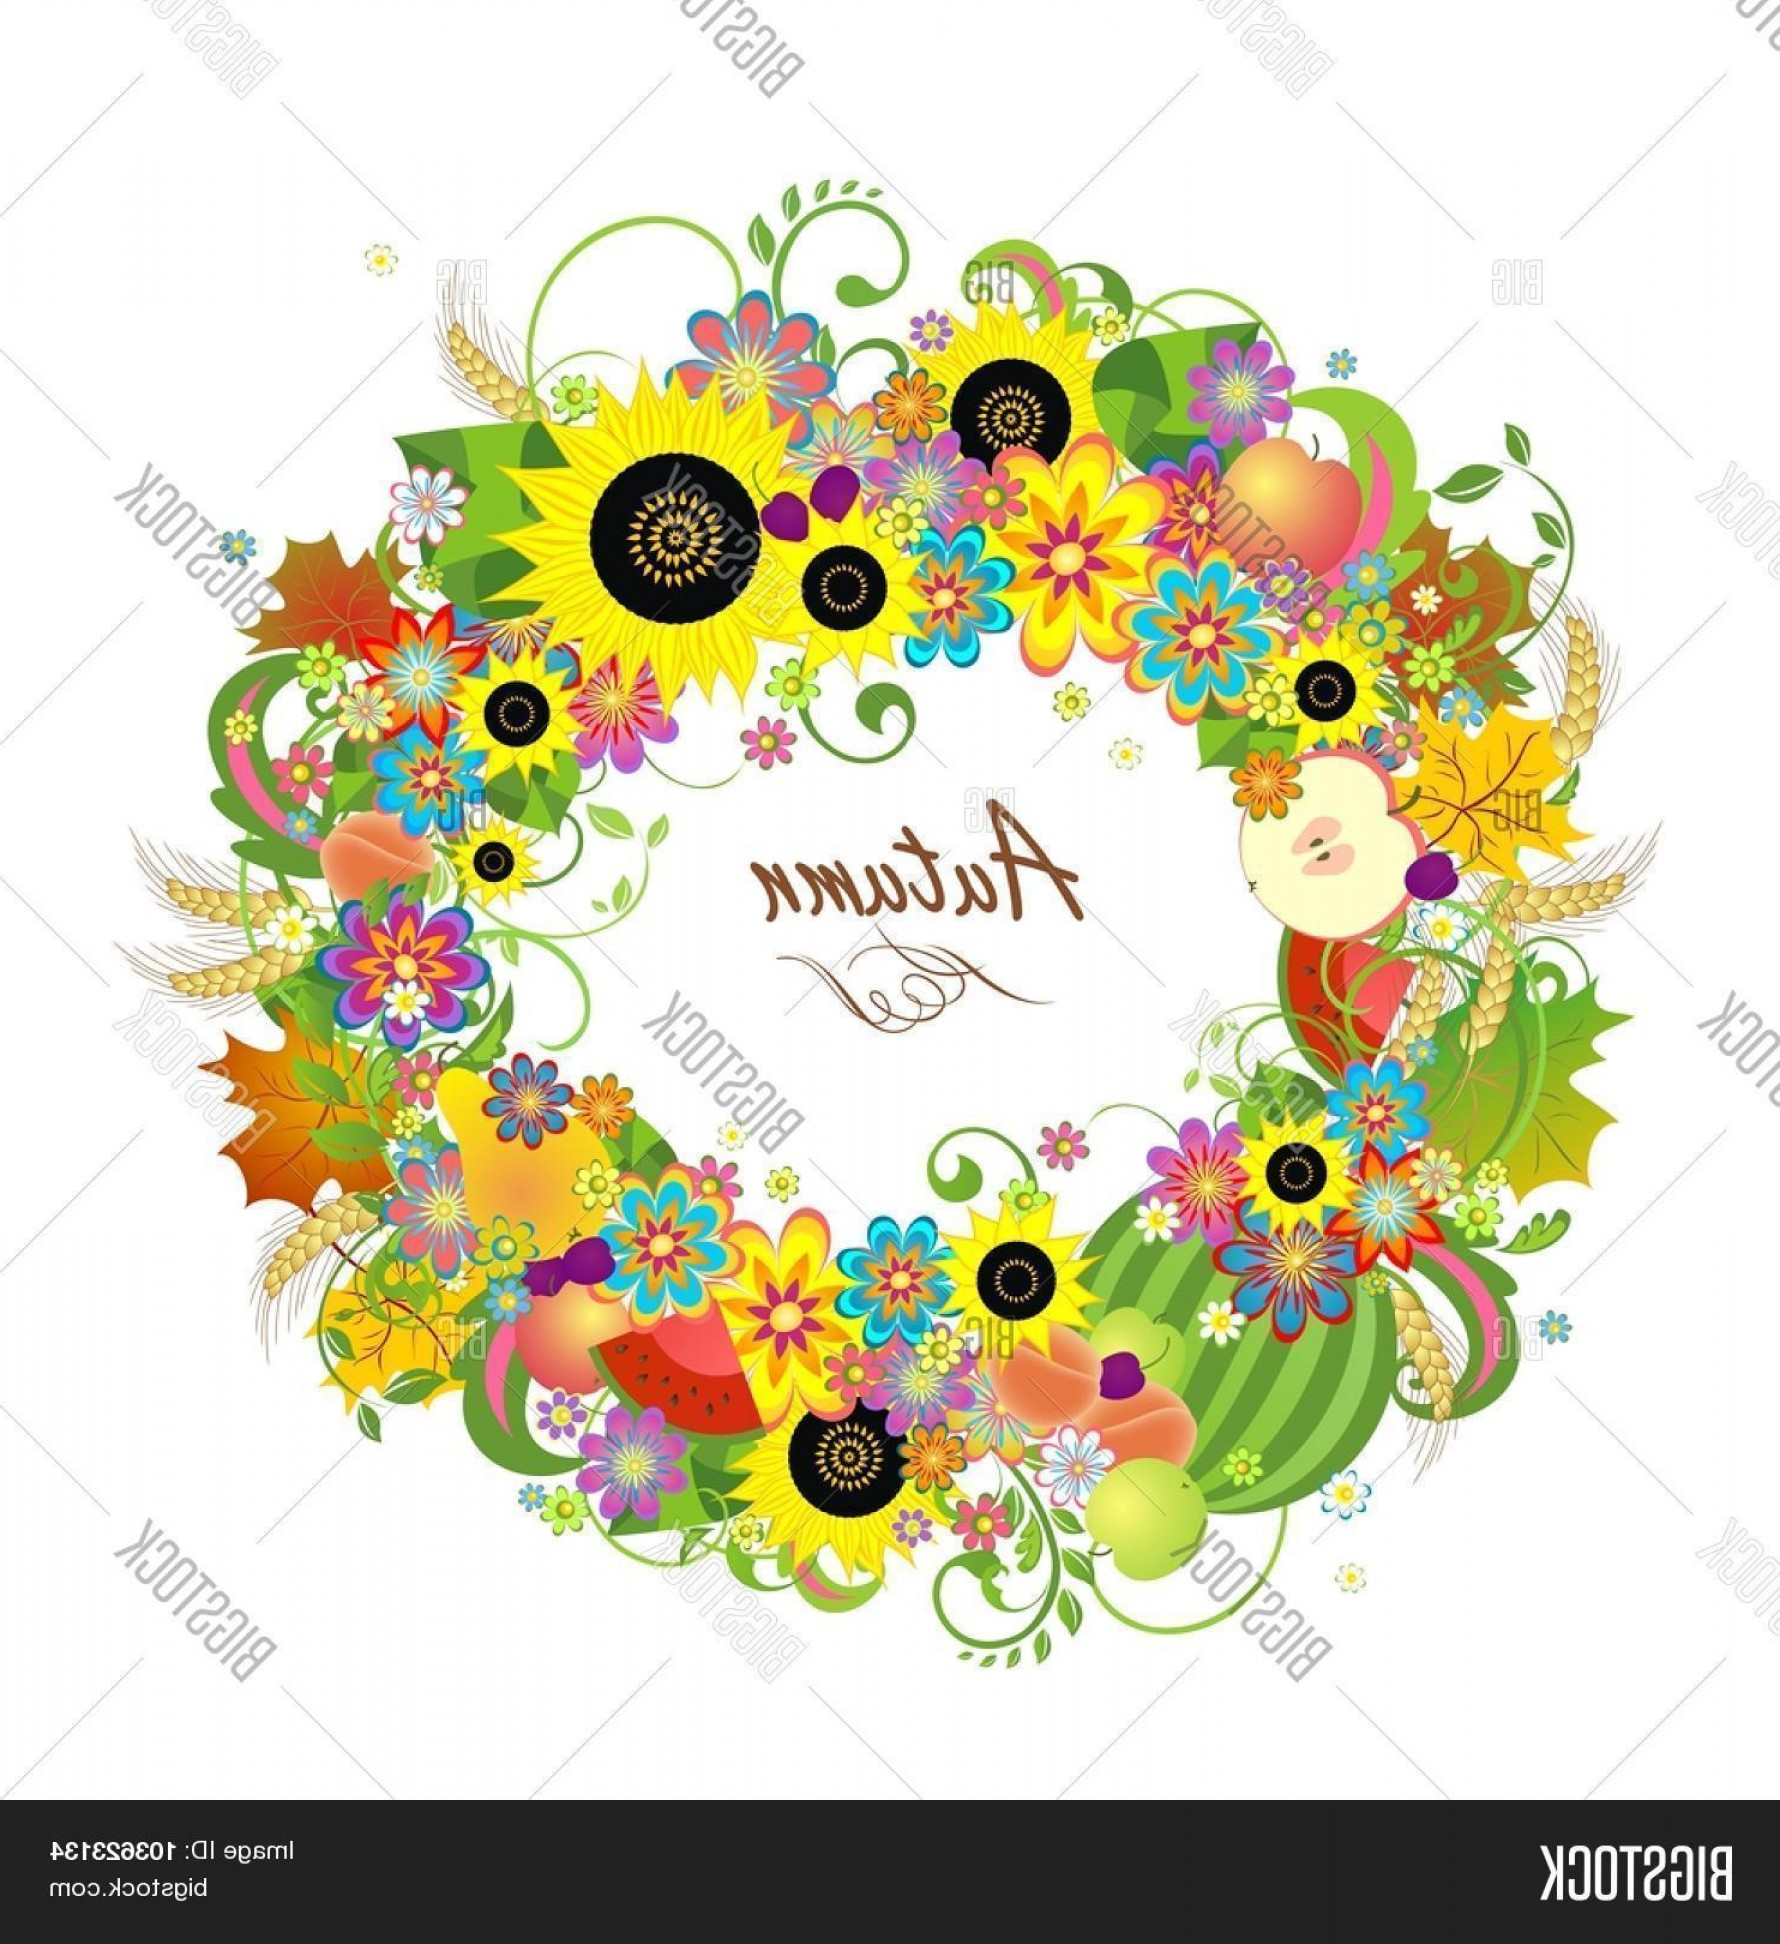 Wheat Flourishes Vector: Stock Vector Floral Wreath With Fruitsc Wheat And Sunflowers